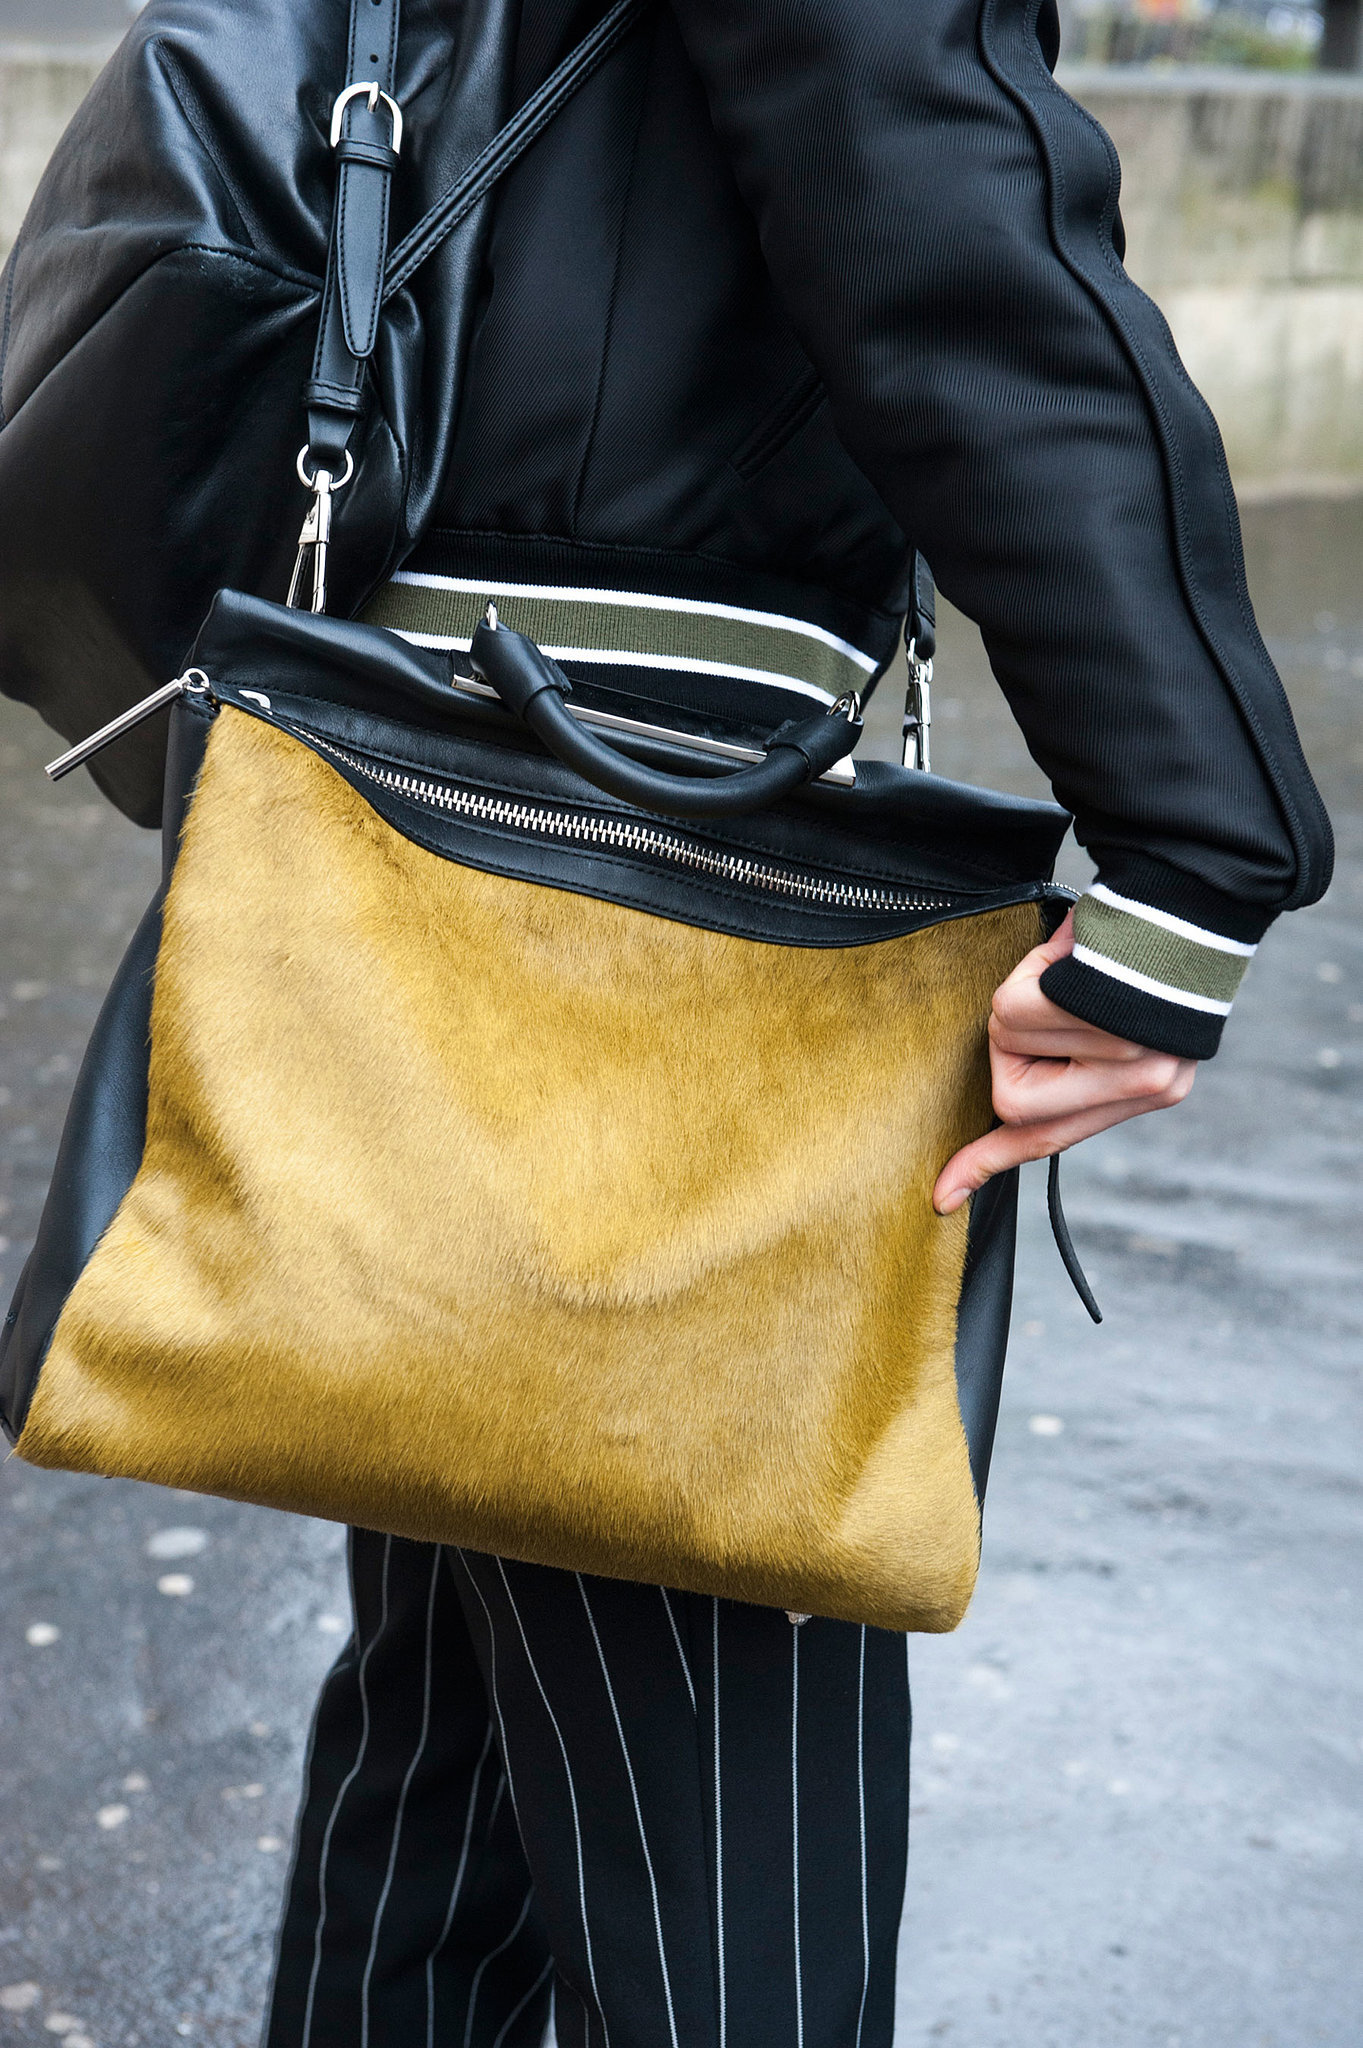 We spy a textured 3.1 Phillip Lim Ryder bag — and we'd like to get our hands on it.